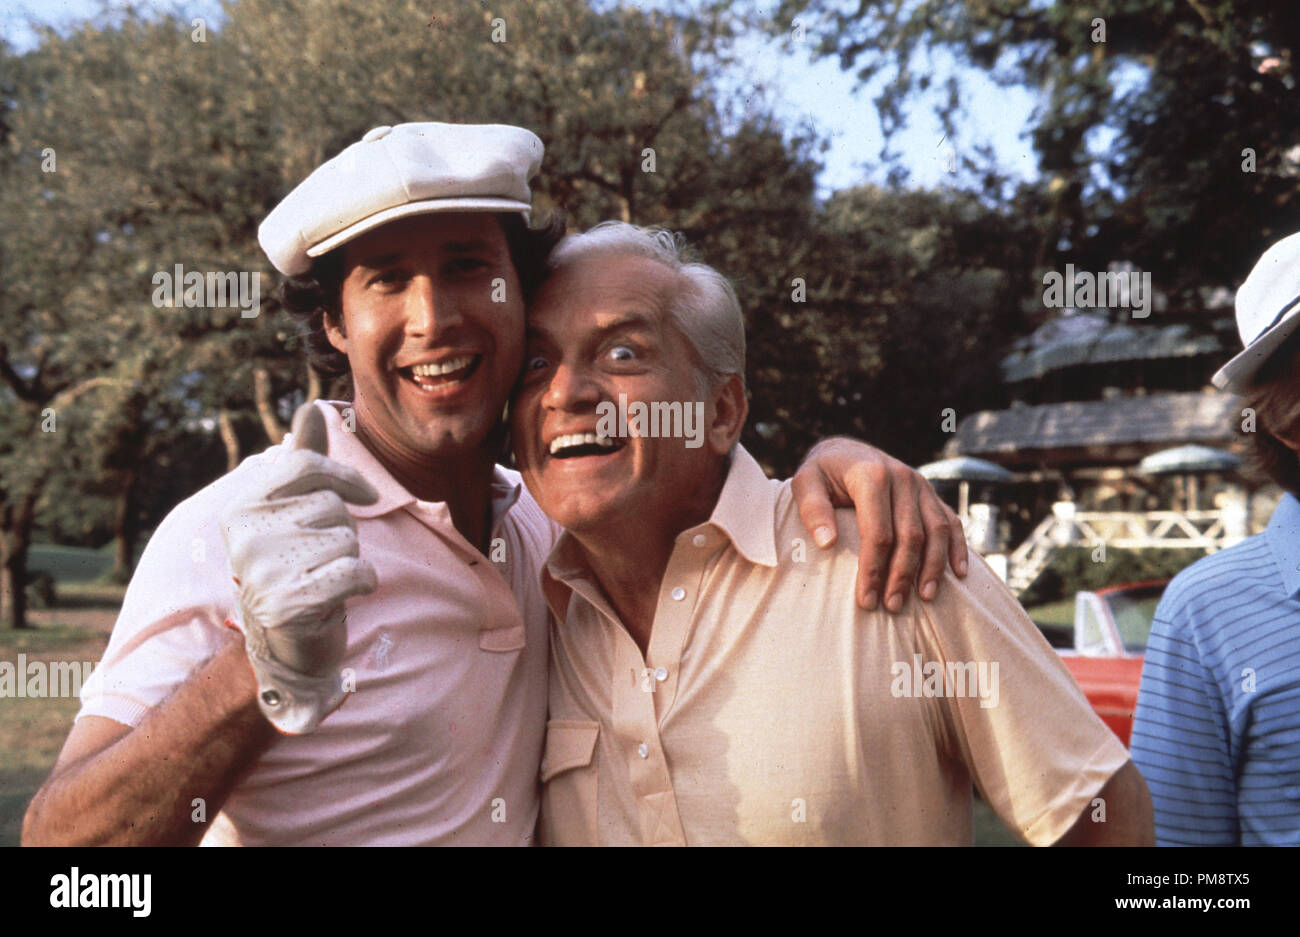 Studio Publicity Still from 'Caddyshack' Chevy Chase, Ted Knight © 1980 Orion  All Rights Reserved   File Reference # 31715291THA  For Editorial Use Only - Stock Image